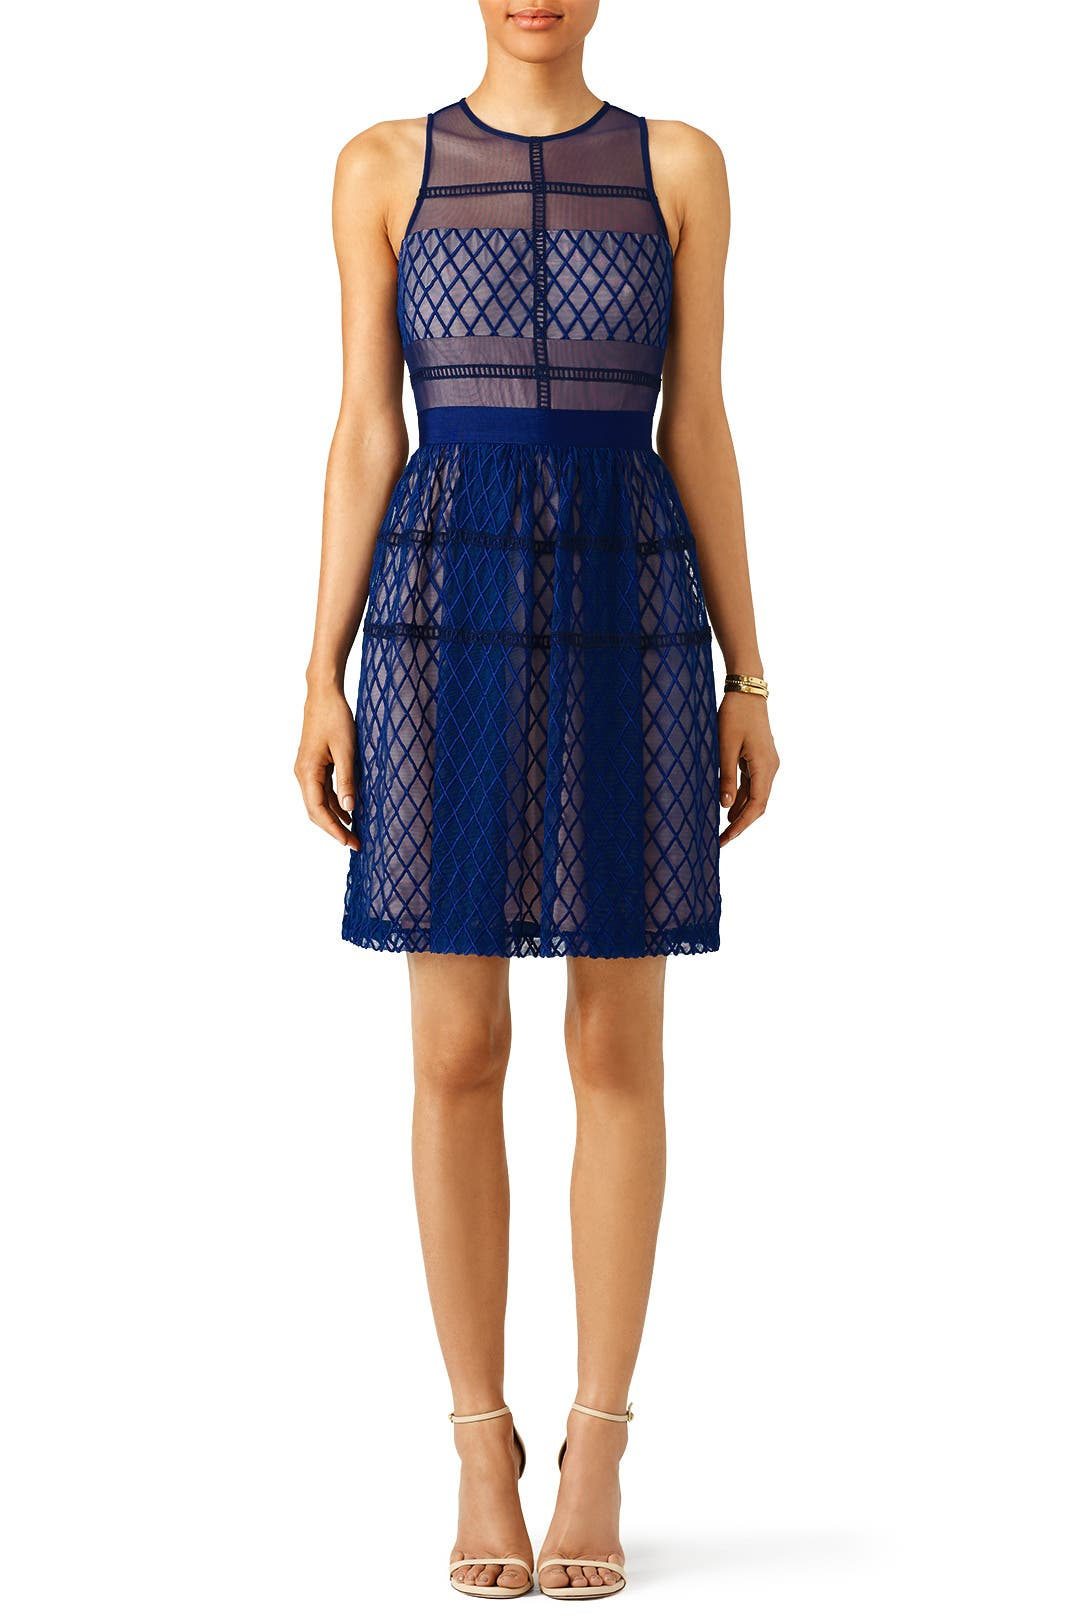 Blue Jordan Dress By Slate Amp Willow For 30 50 Rent